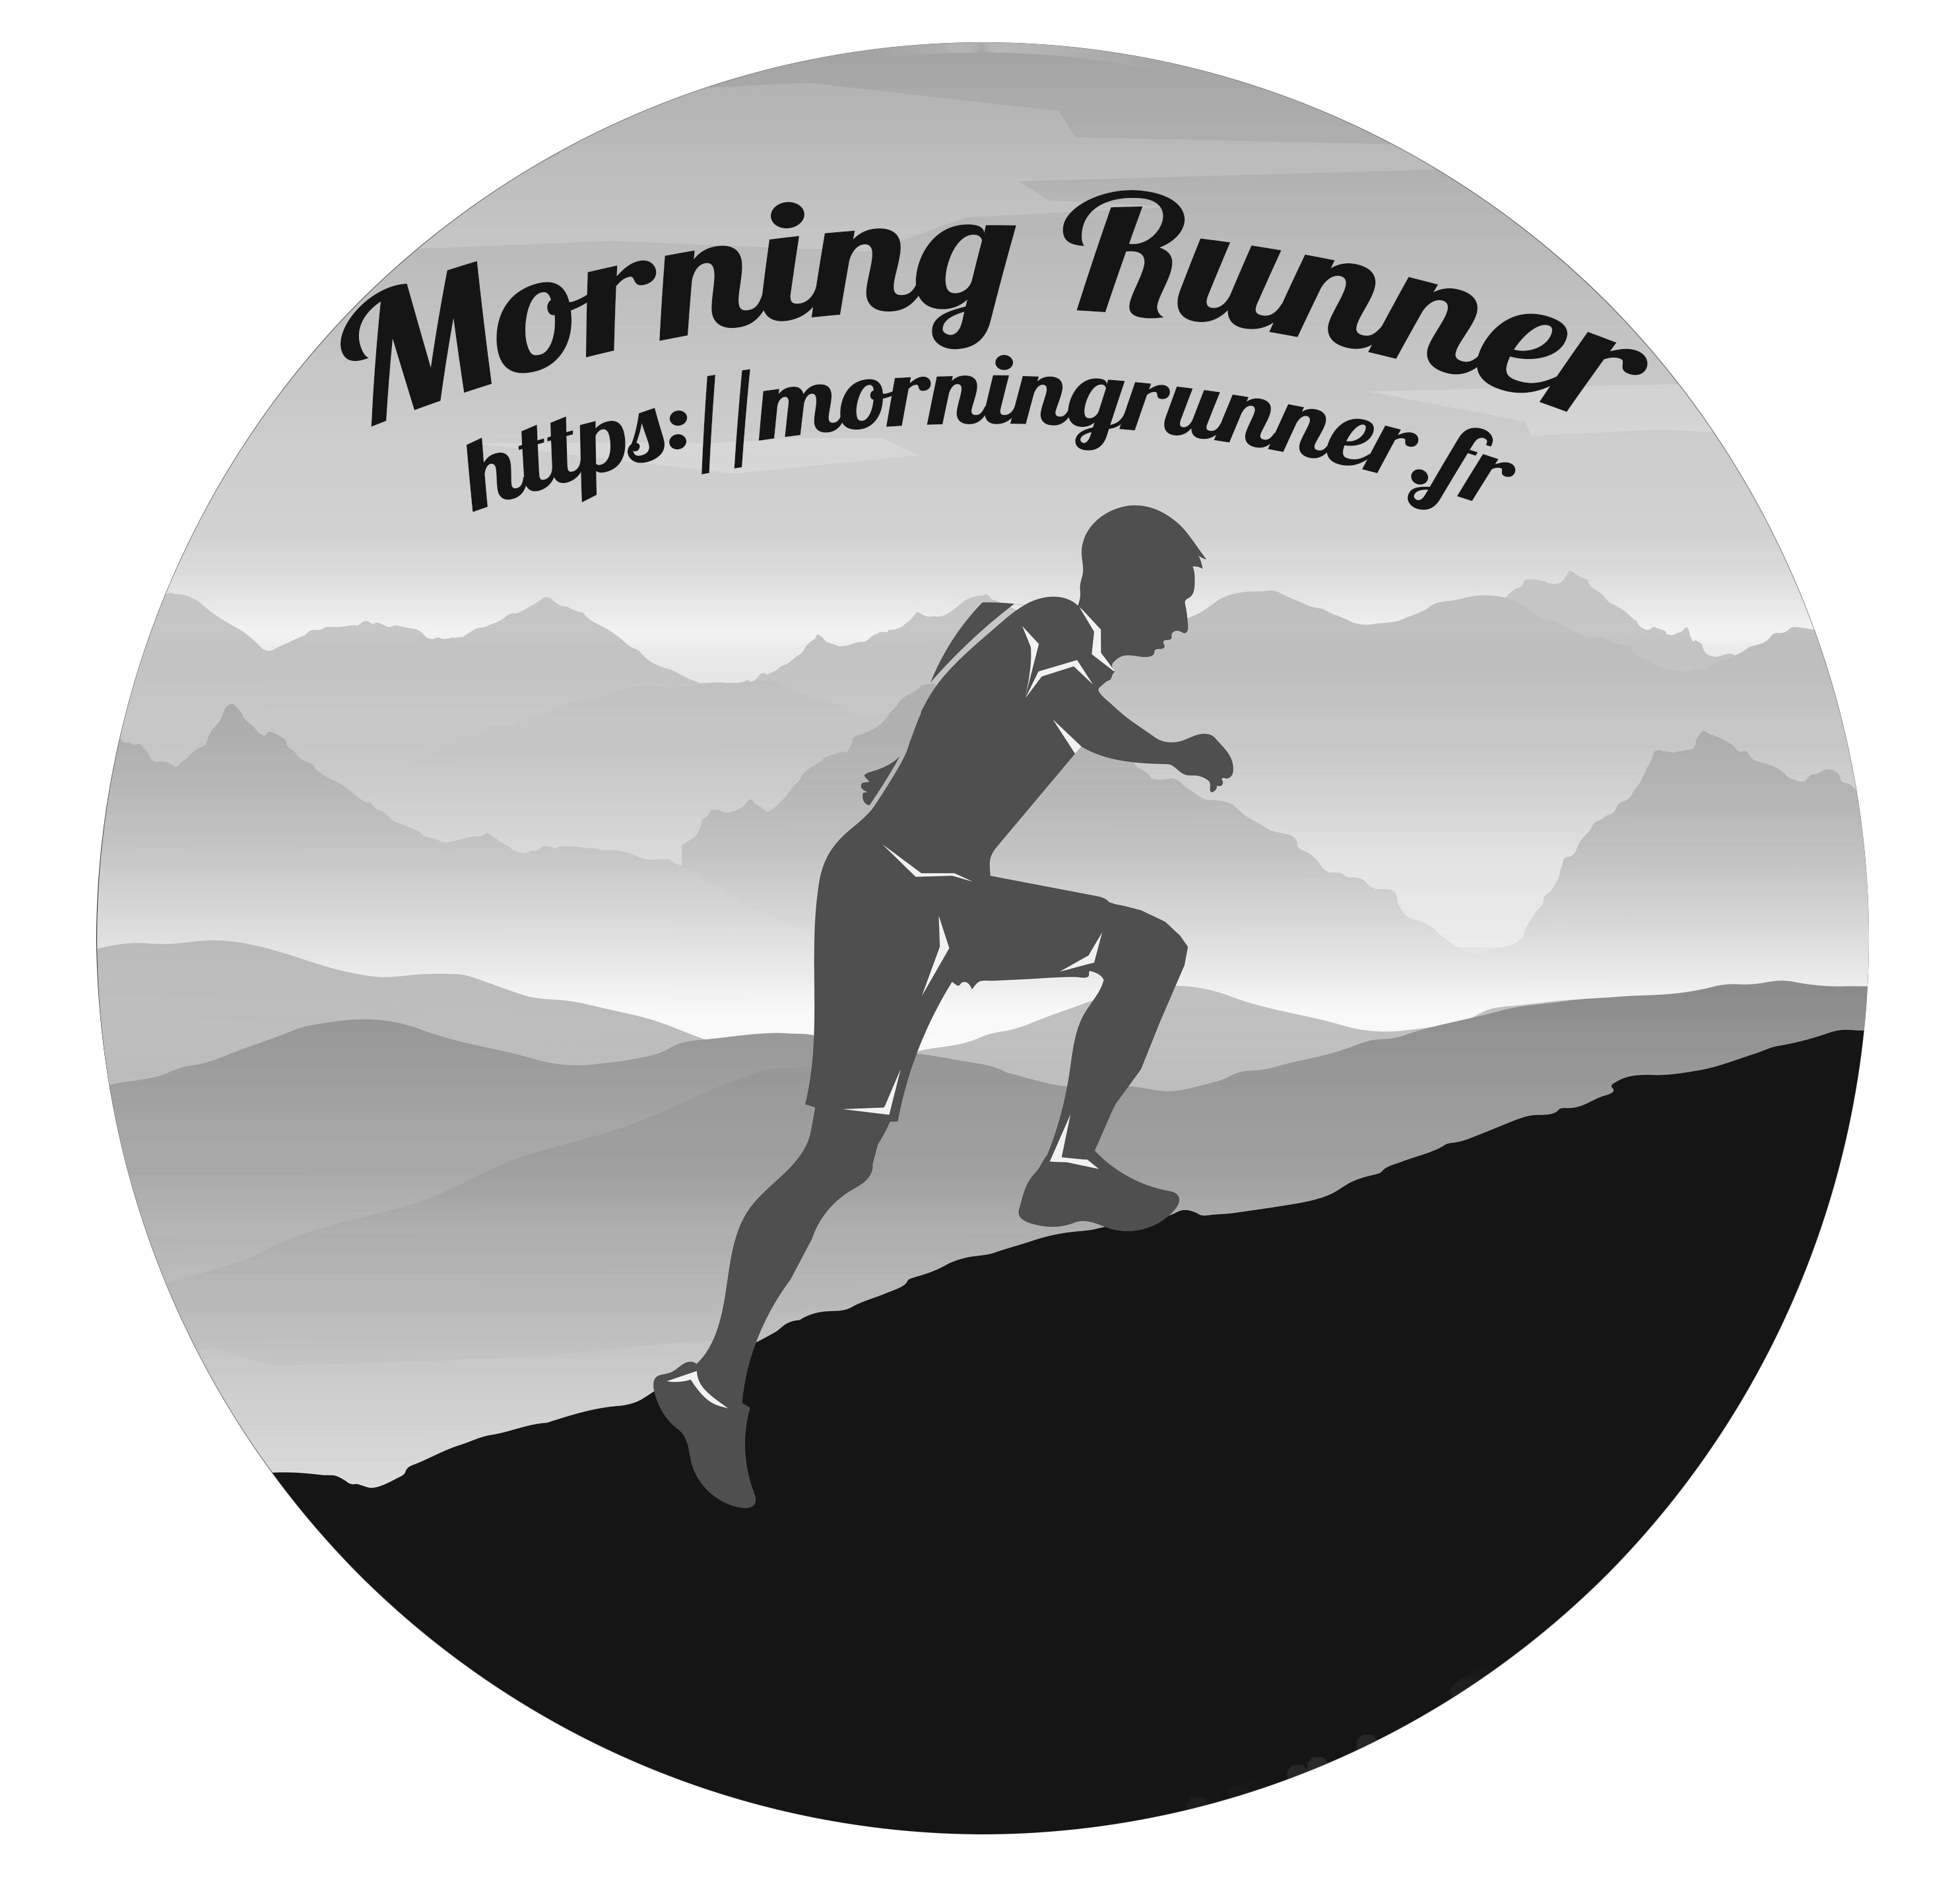 Morning Runner - Anthony FRONTERA